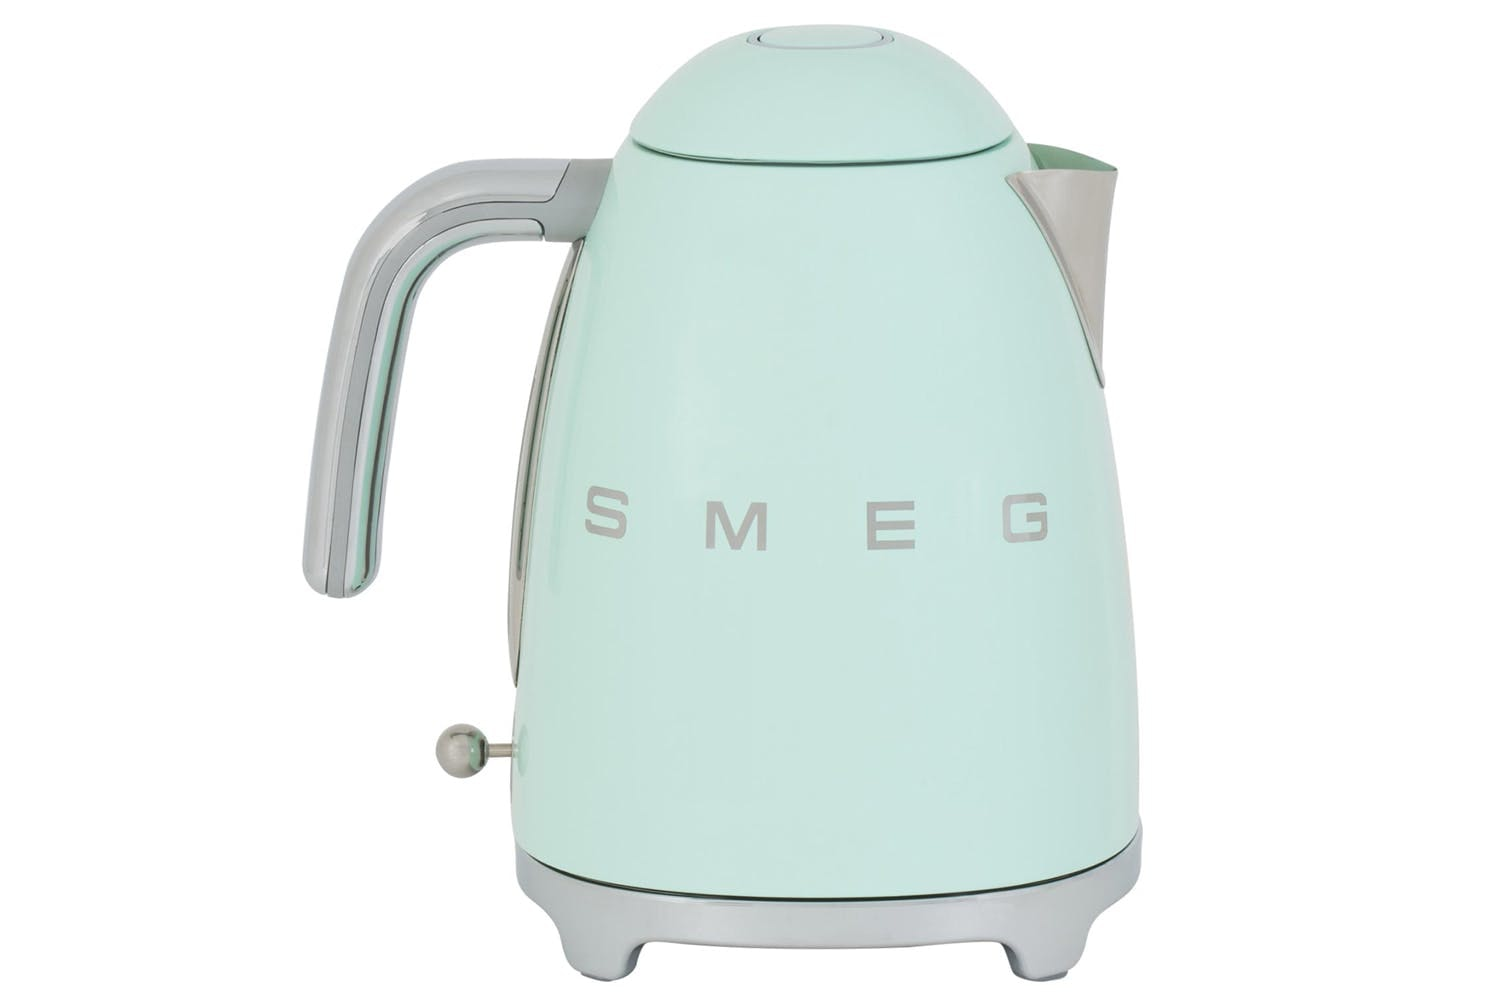 Smeg Retro Style Kettle | Pastel Green